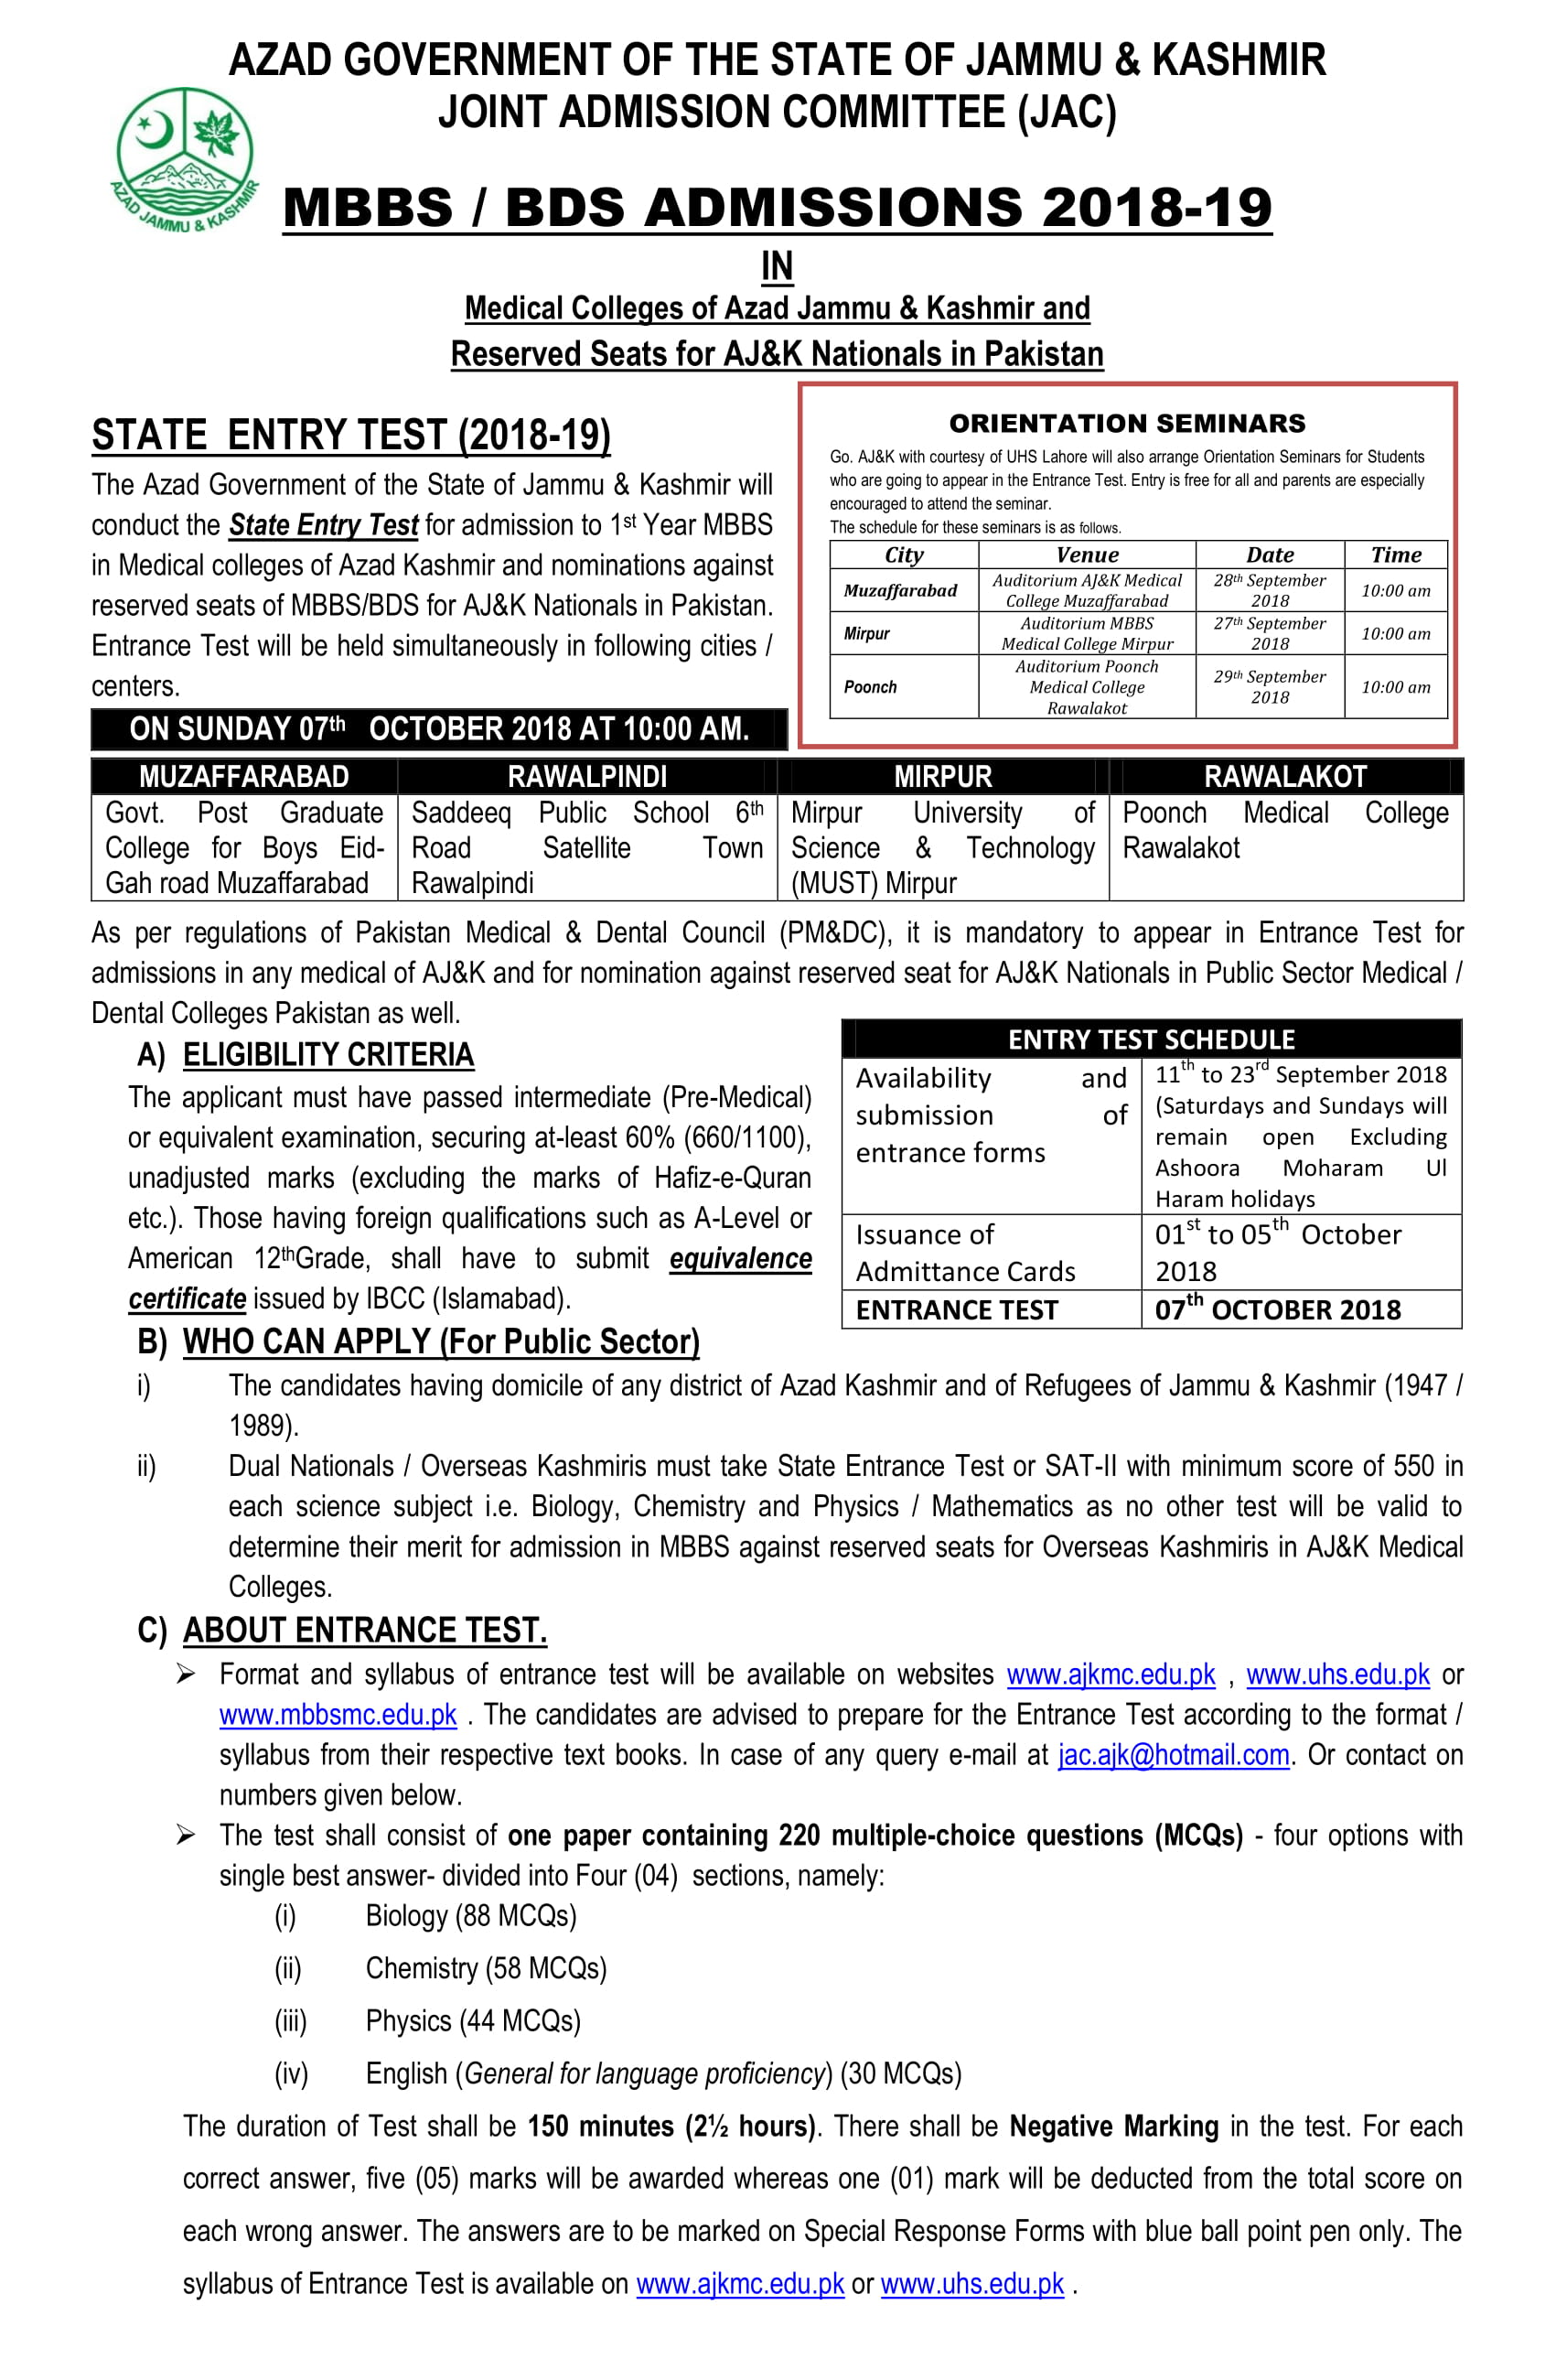 State Entry Test 18 (Azad Govt. of State of Jammu & Kashmir Joint Admission Committee) JAC